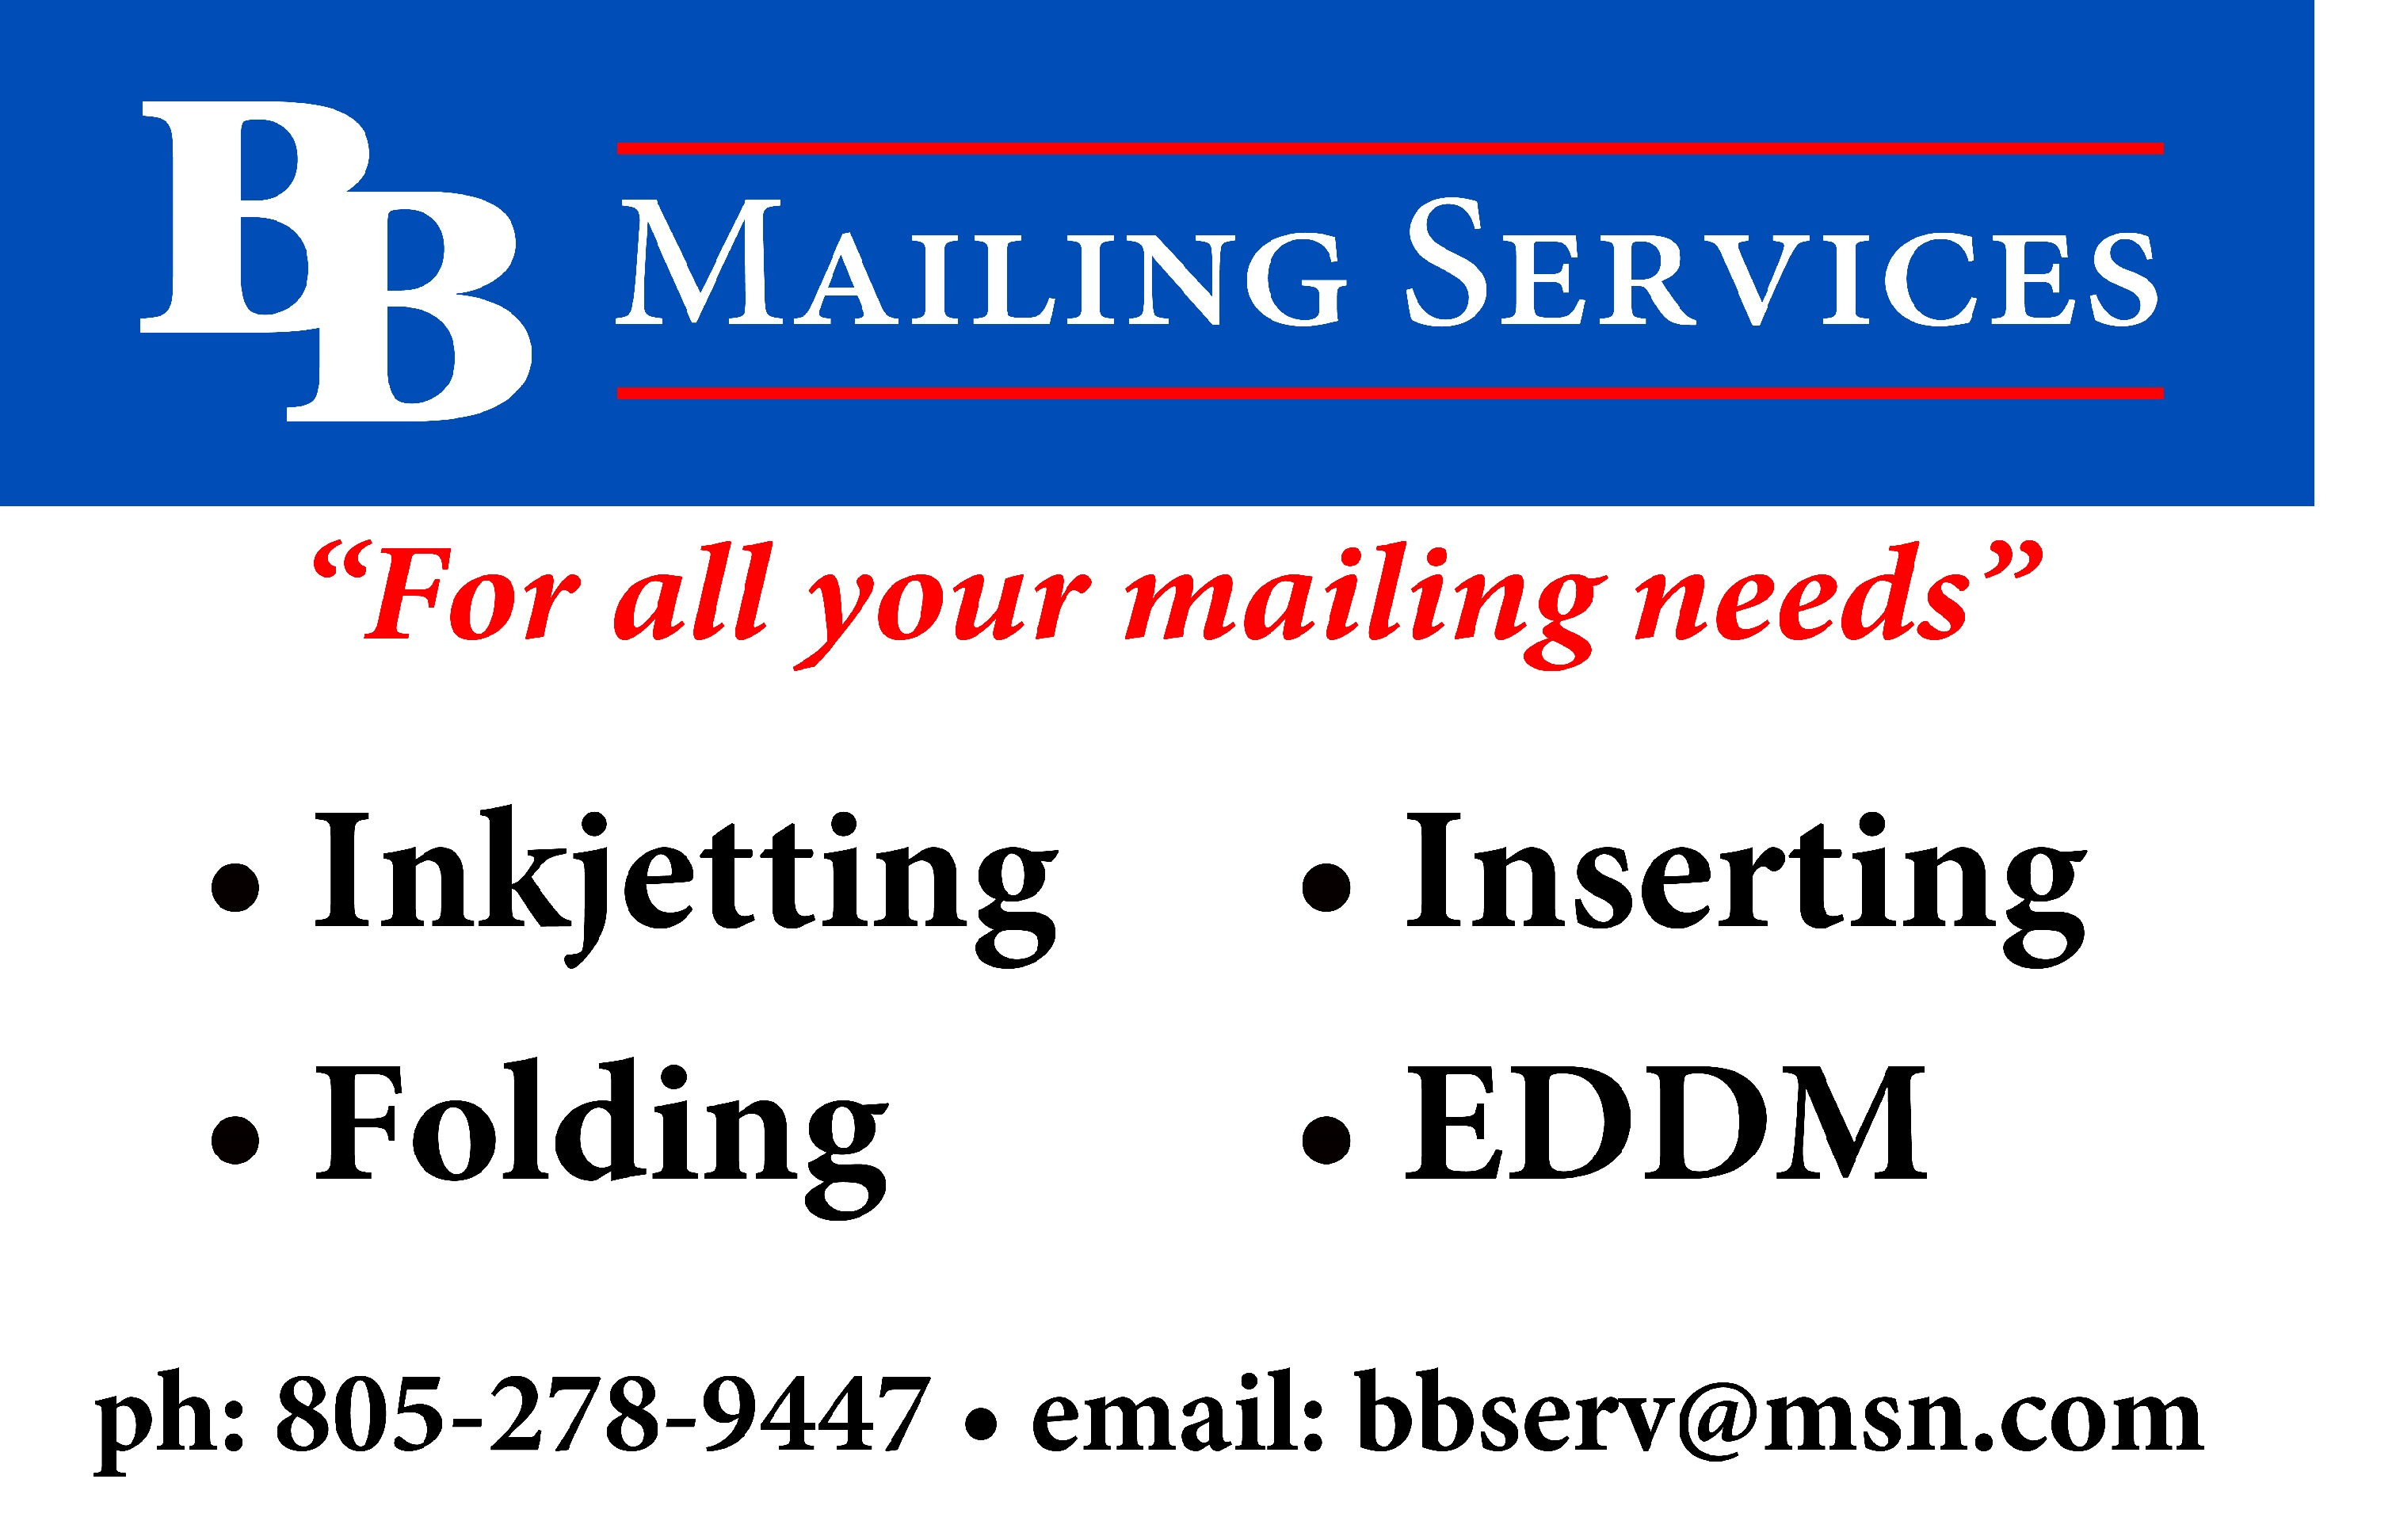 BB Mailing Services